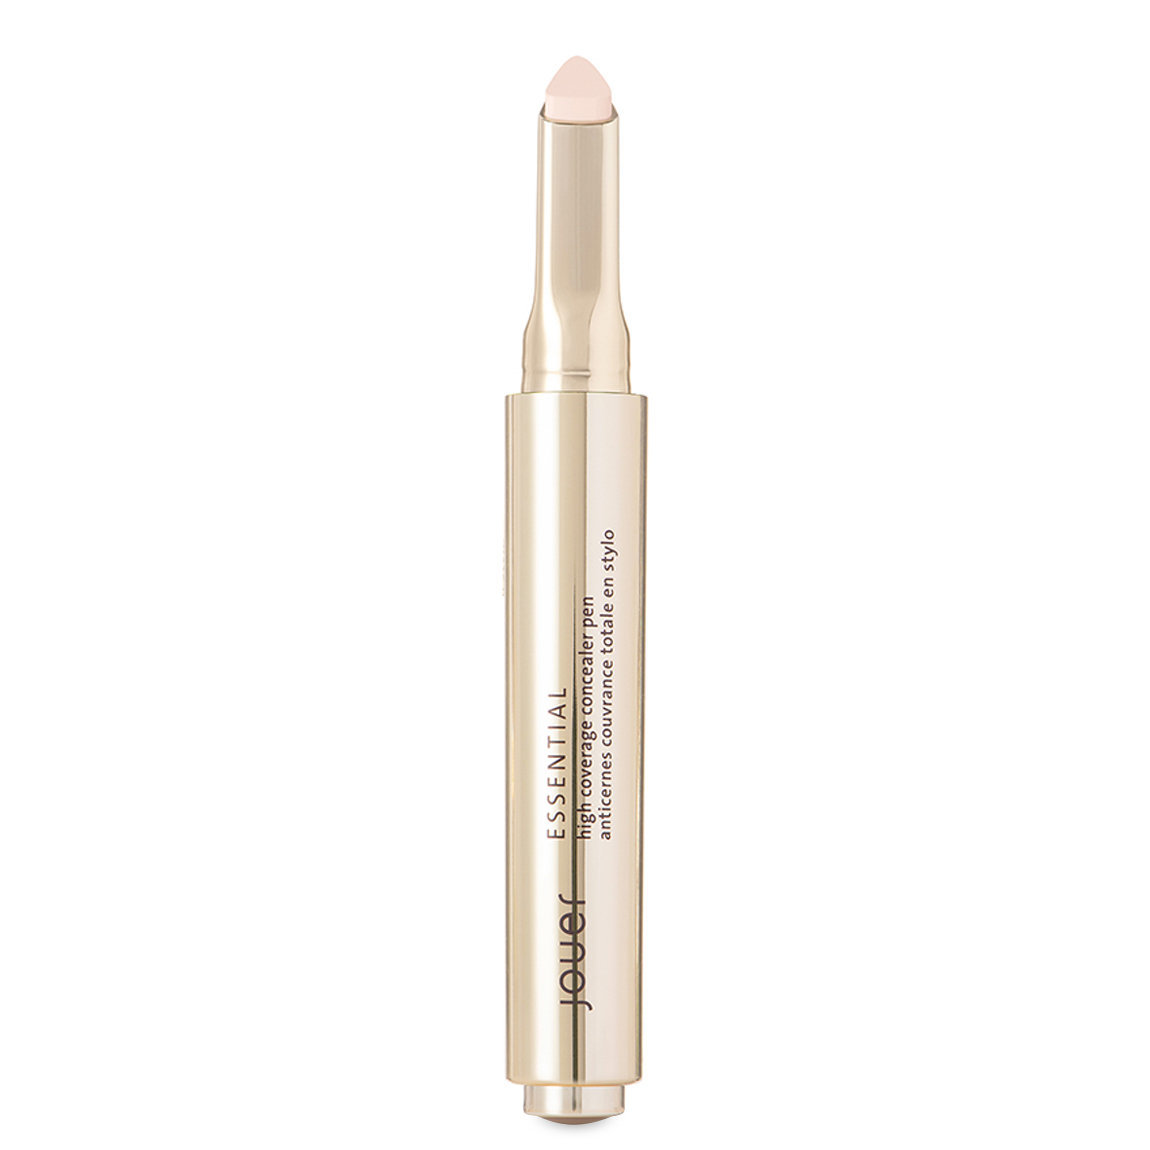 Jouer Cosmetics Essential High Coverage Concealer Pen Snow